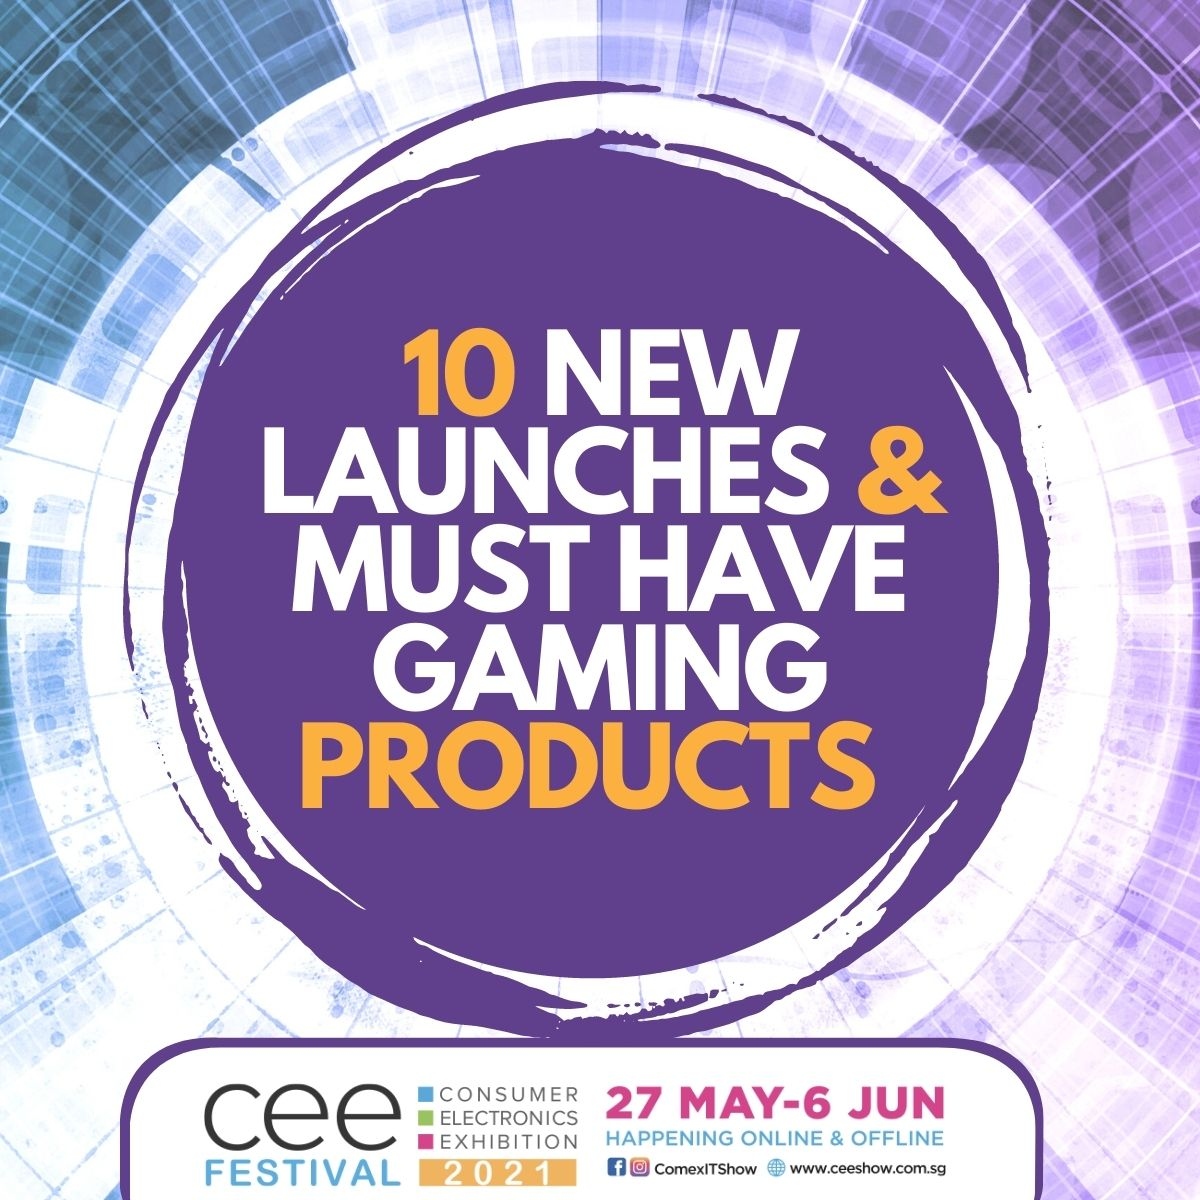 CEE Festival new launches must have gaming products